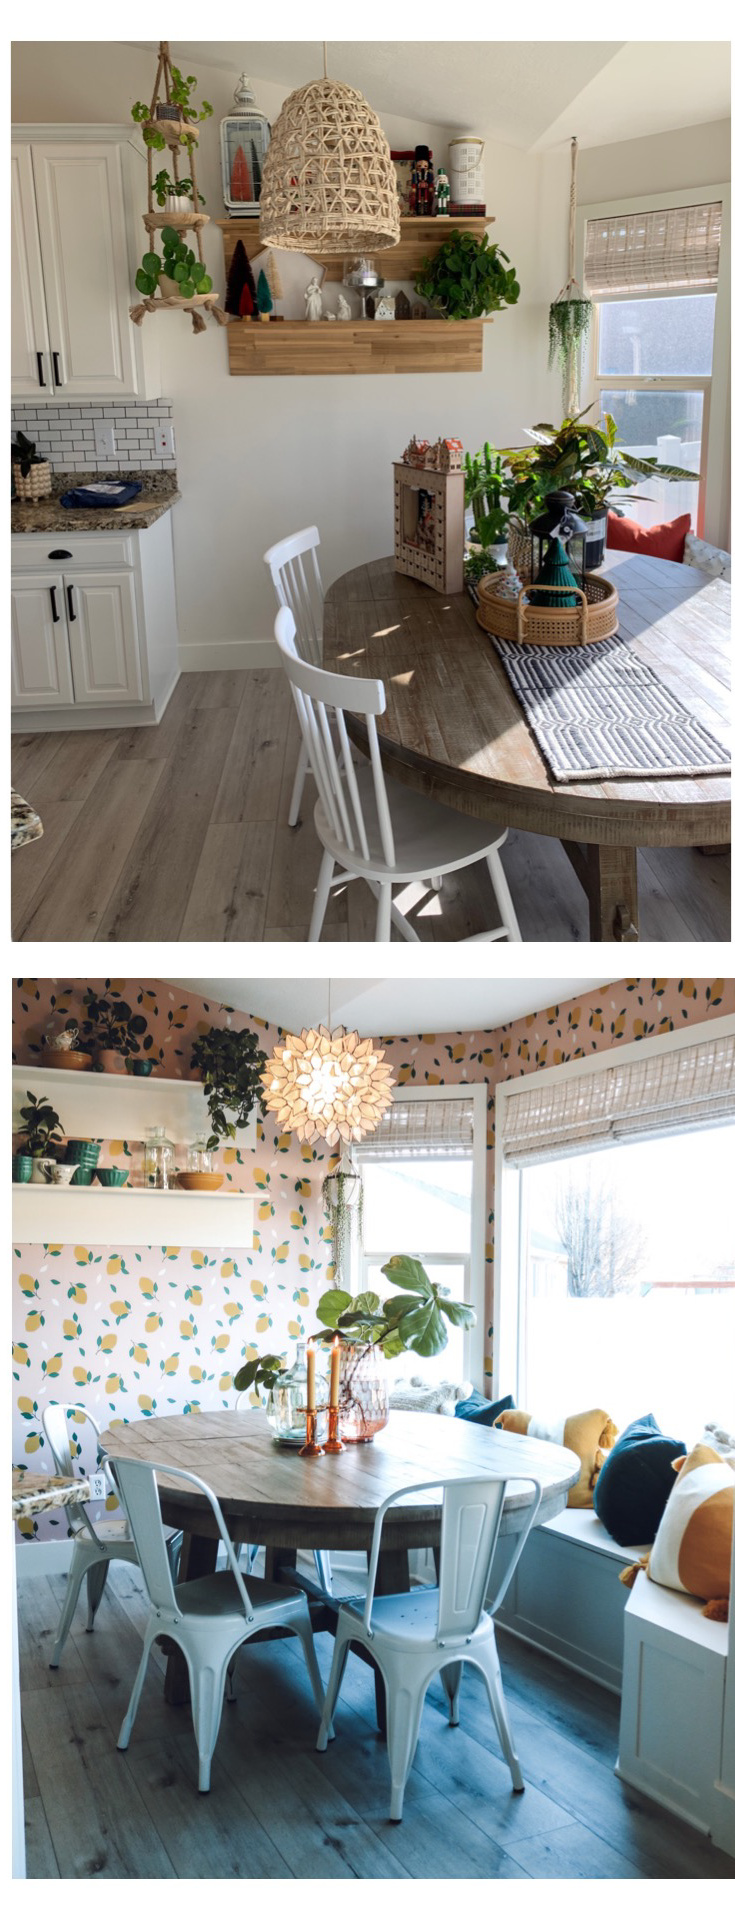 Making of a Kitchen with Removable Wallpaper